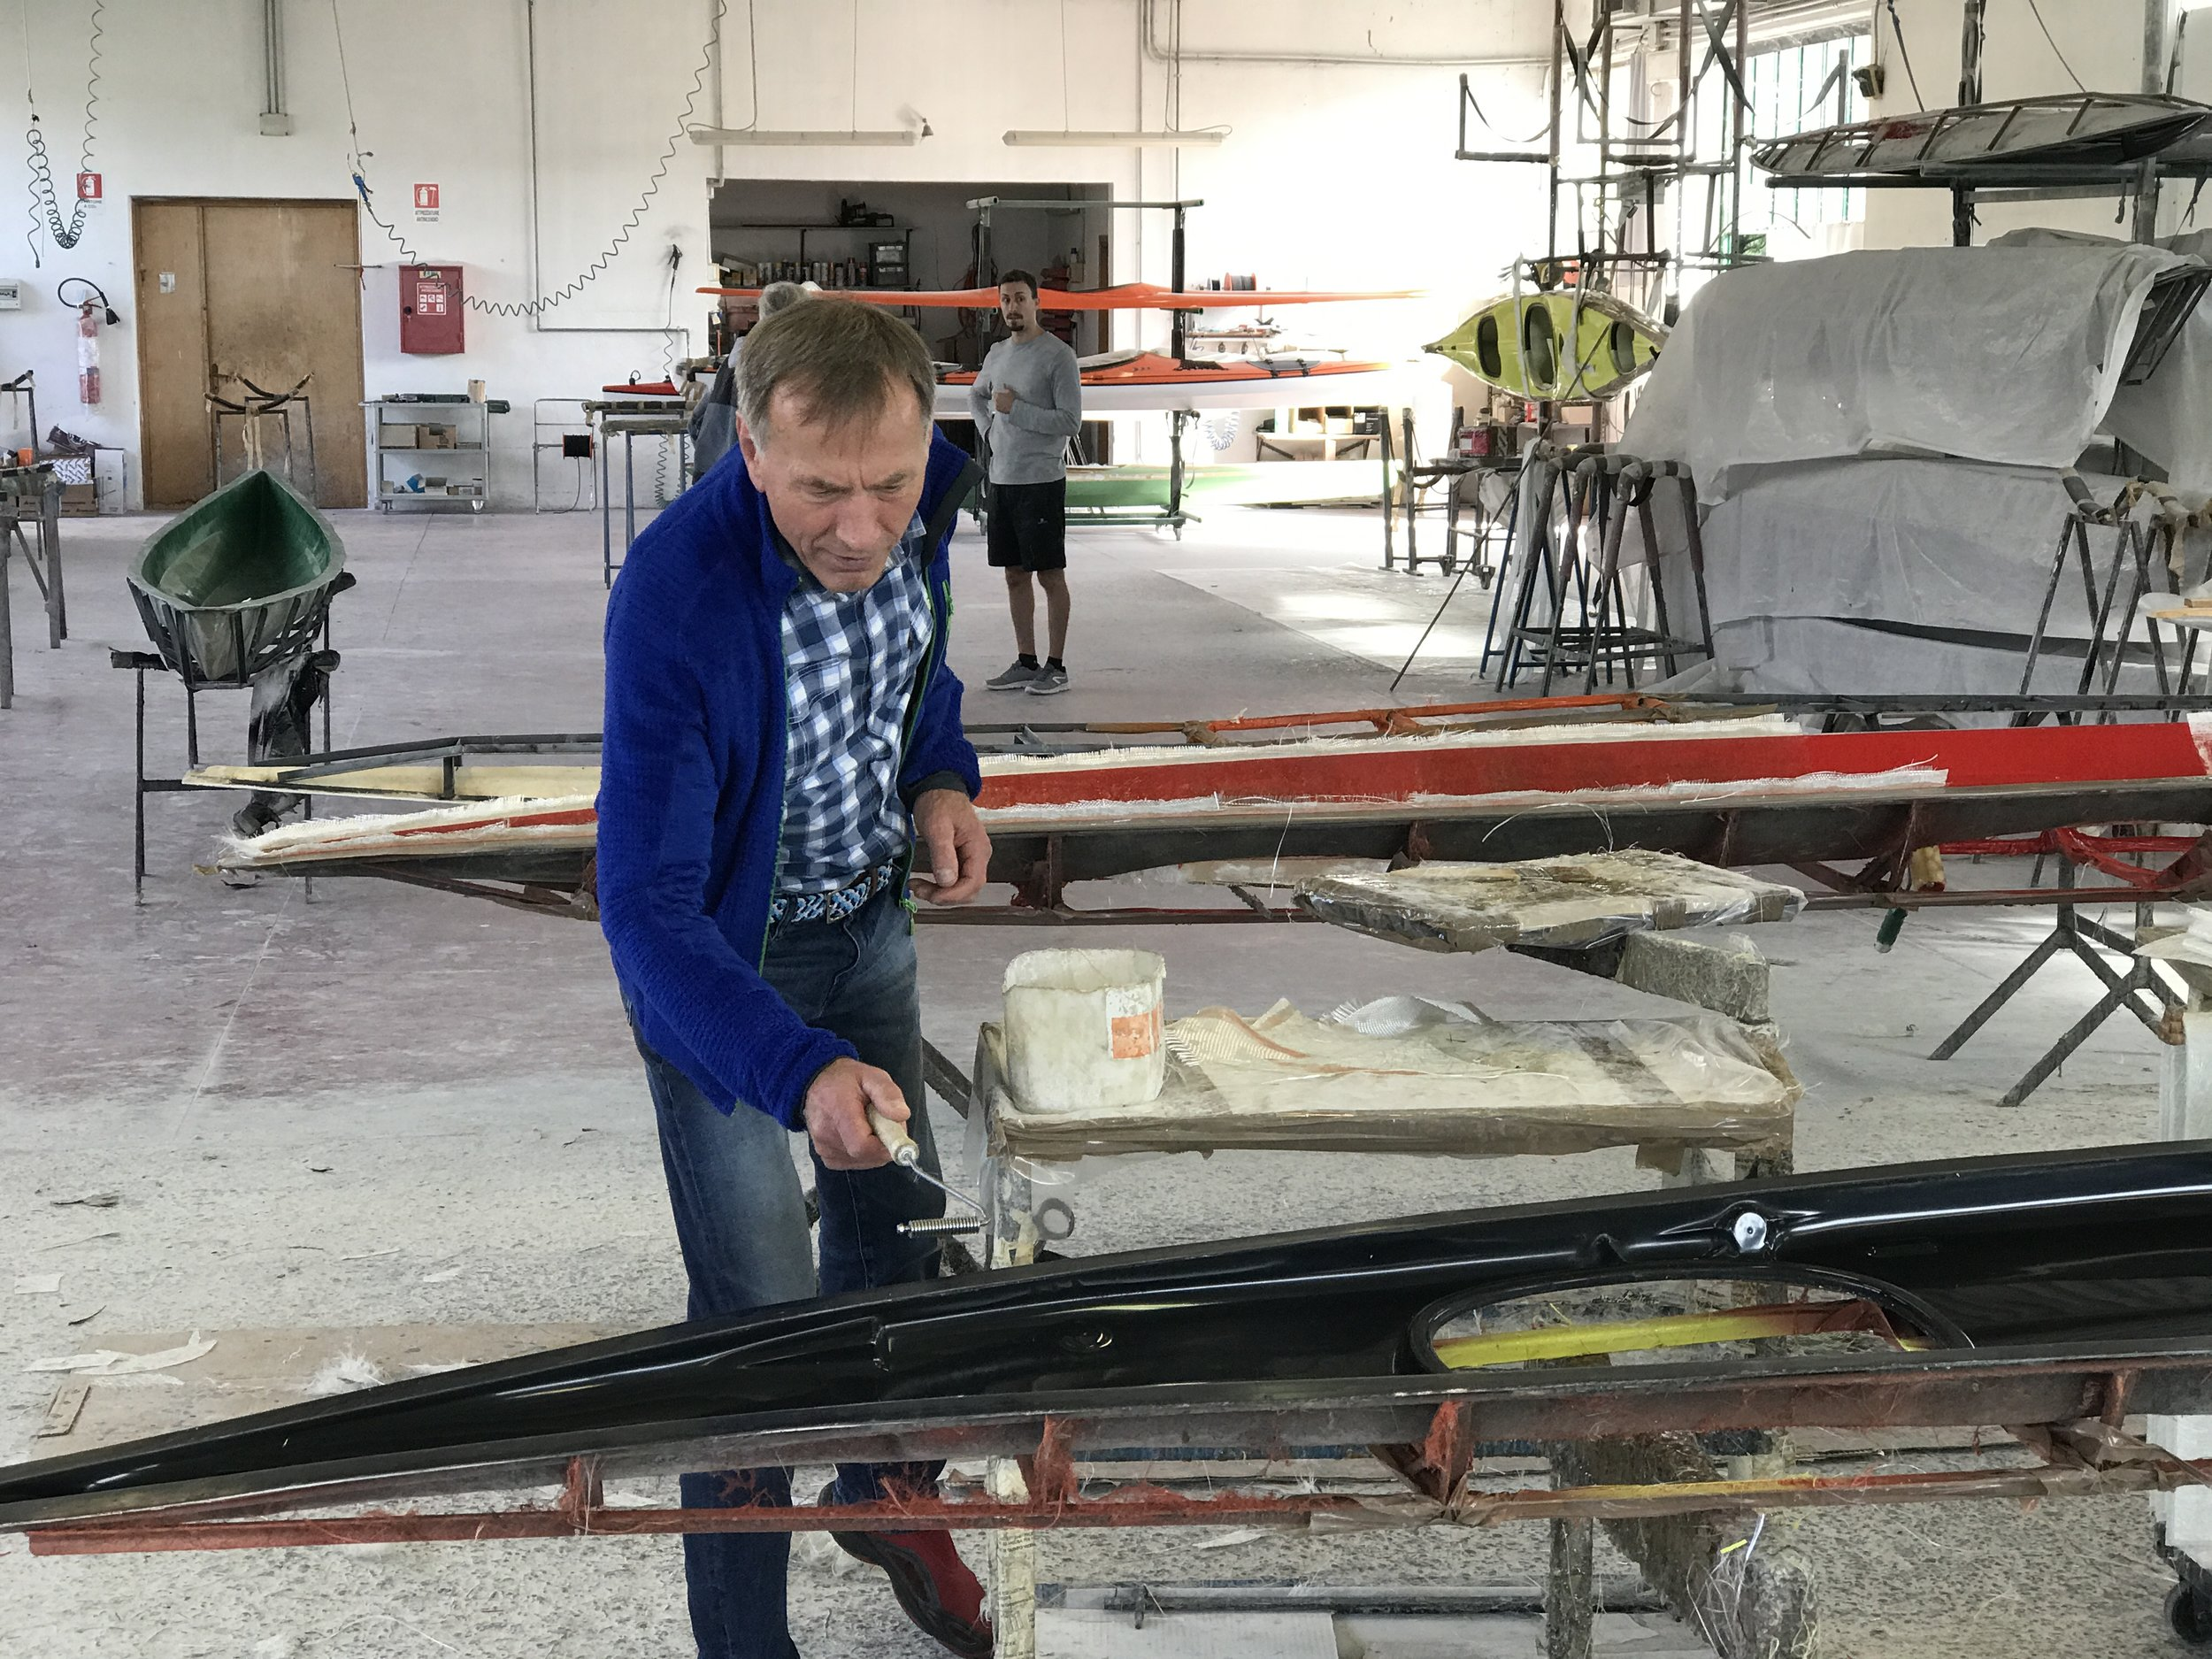 To make a long story short, we ended up in a factory and bought a great kayak called Marlin. Now, Endre is ready to paddle